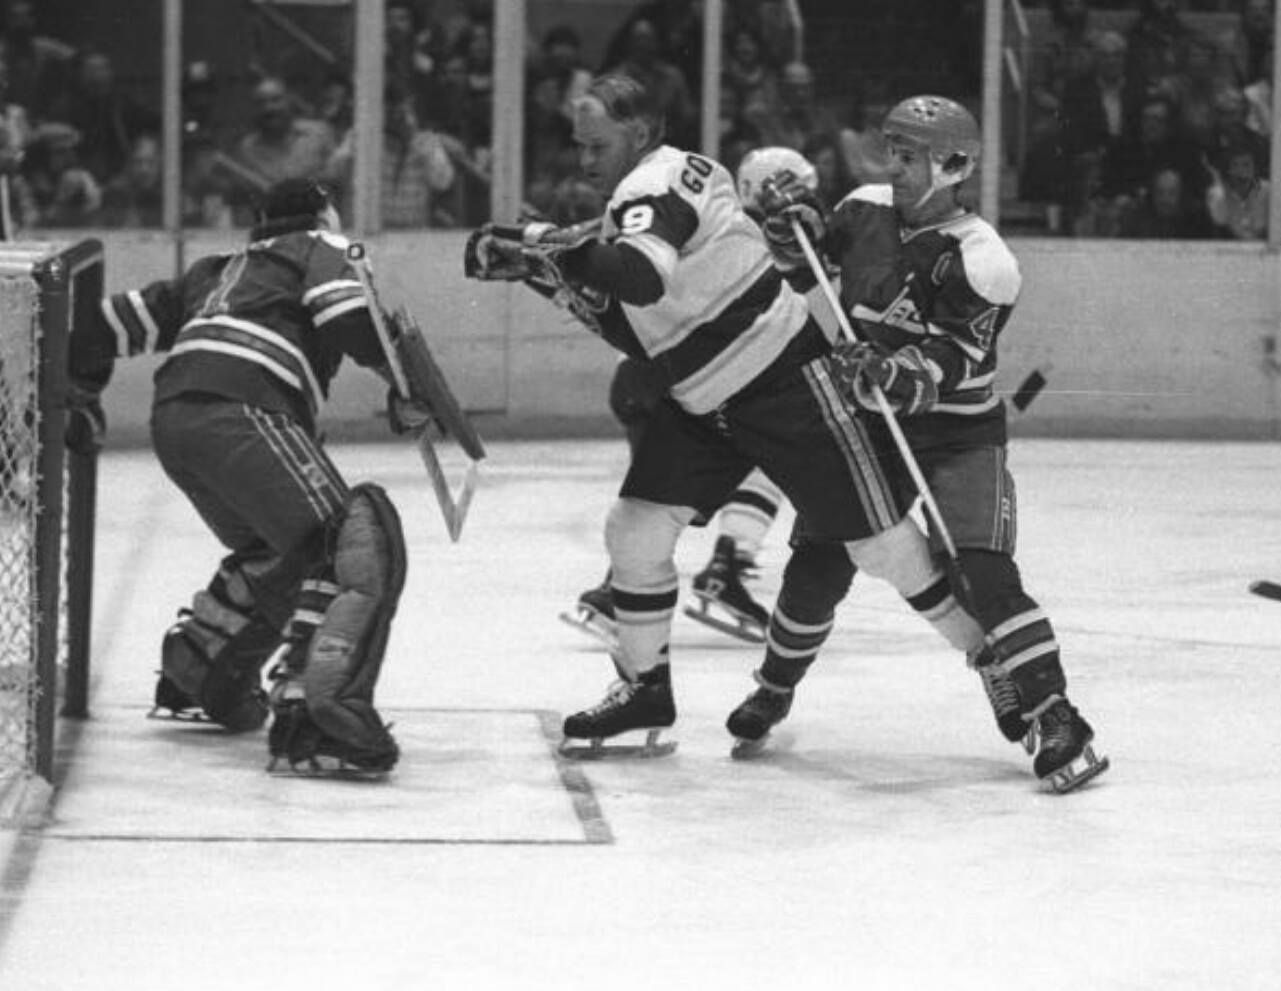 Lars Erik Sjoberg doesn't give an inch to Mr. Hockey who